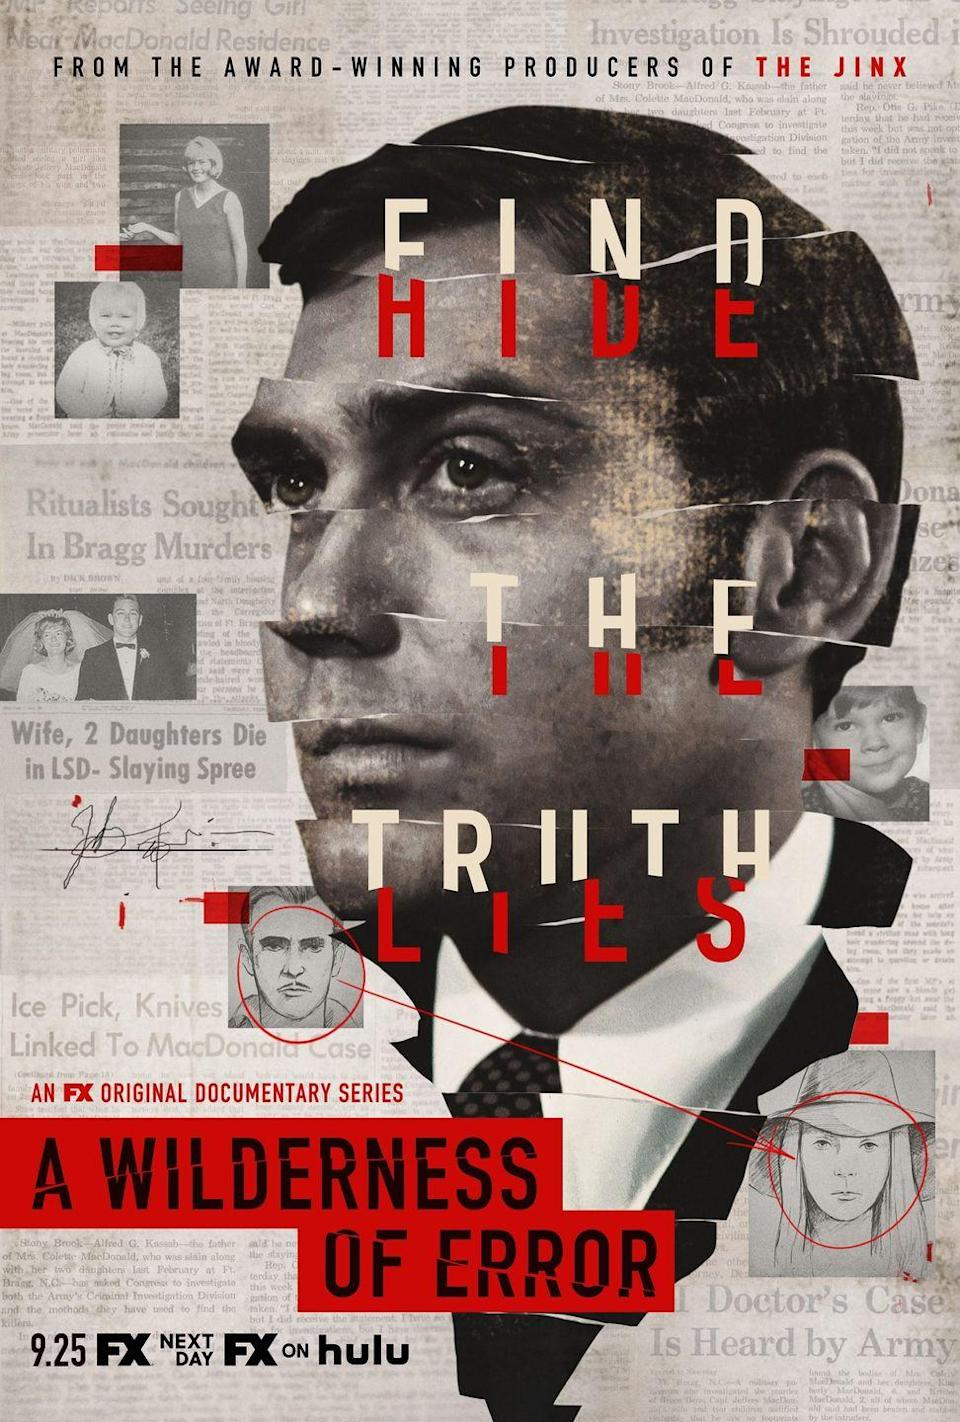 """<p>This Hulu doc examines the case of Jeffrey MacDonald, a Princeton alum and former Green Beret who may or may not have murdered his entire family in 1970. His side of the story: A group of Manson-family copycats broke into his house and chanted """"kill the pigs"""" during the attack. </p><p>MacDonald subsequently went on a big press tour, appearing on talk shows and giving interviews about the killings, which made police question his innocence. Since then, the case has been covered in several books and movies, and remains — basically — unsolved.</p><p><a class=""""link rapid-noclick-resp"""" href=""""https://go.redirectingat.com?id=74968X1596630&url=https%3A%2F%2Fwww.hulu.com%2Fseries%2Fa-wilderness-of-error-a1402111-43a3-4d1b-9a92-bf3fe853ef22&sref=https%3A%2F%2Fwww.womenshealthmag.com%2Flife%2Fg28068183%2Fbest-true-crime-documentaries%2F"""" rel=""""nofollow noopener"""" target=""""_blank"""" data-ylk=""""slk:Watch Now"""">Watch Now</a></p>"""